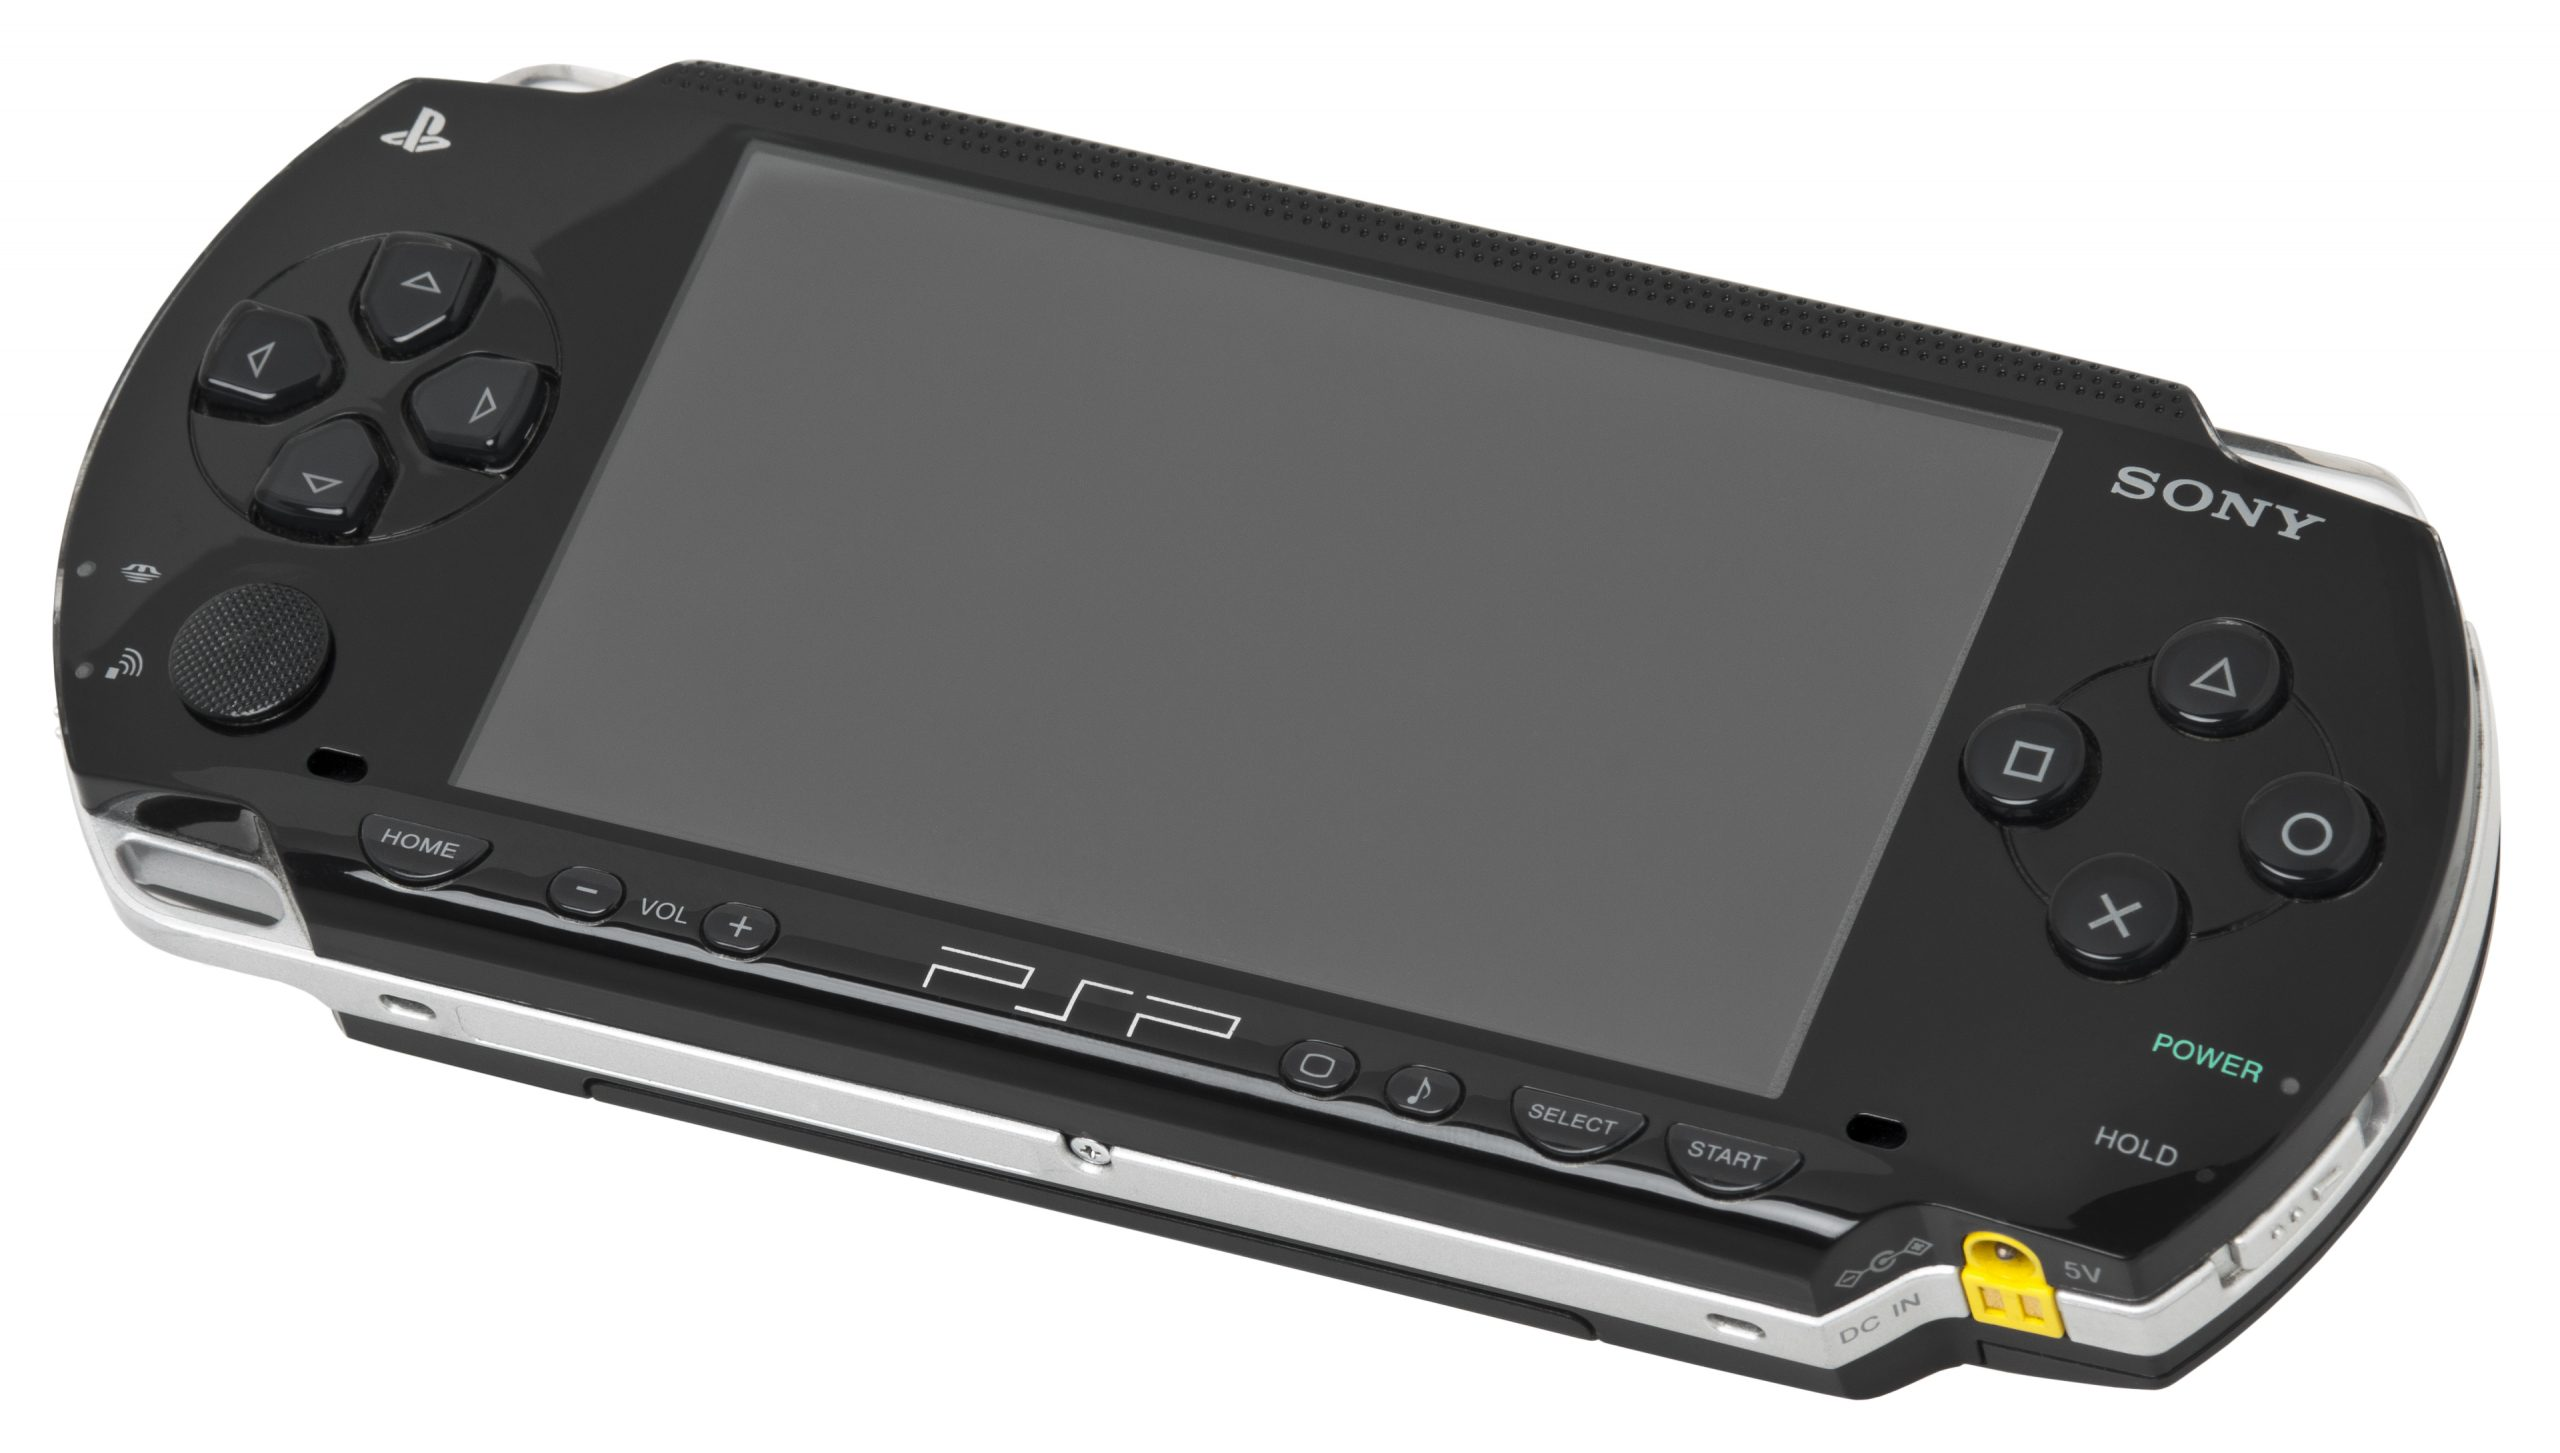 What Is a PSP 2, or a PSP 3? Do They Even Exist?